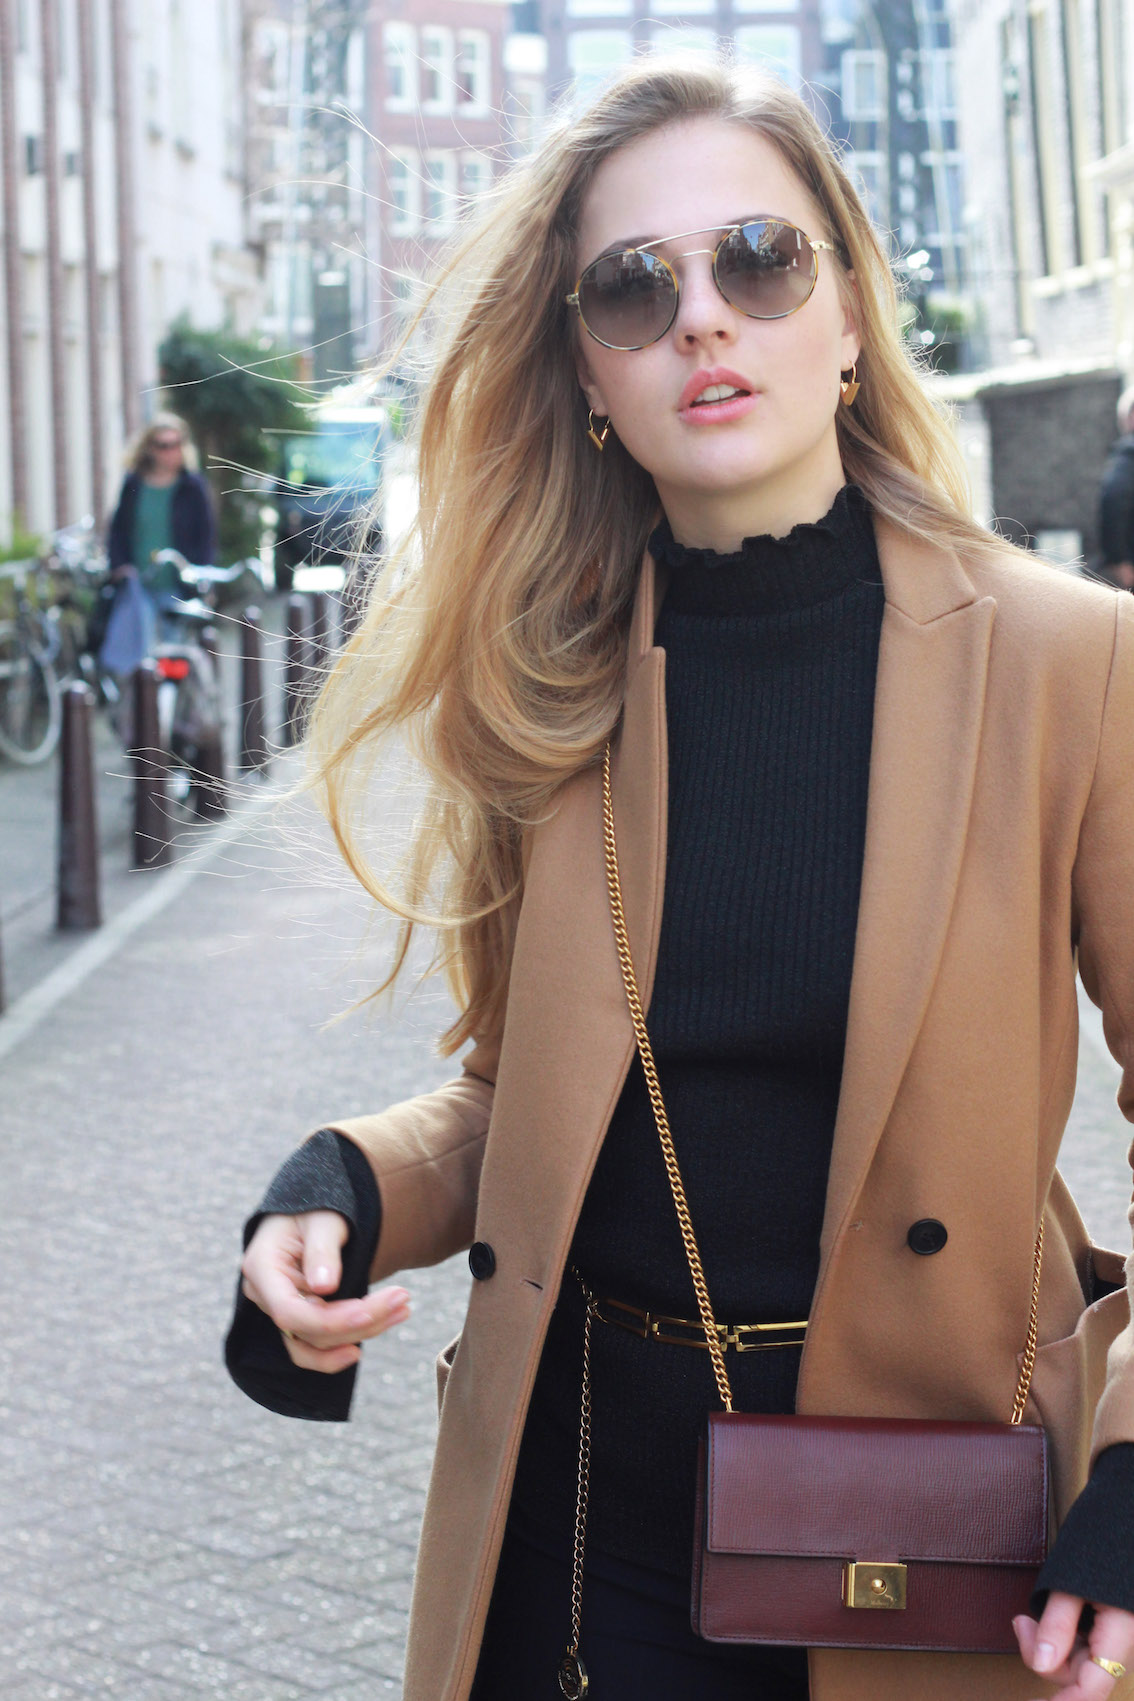 floortjeloves, HOW TO GET BACK ON TRACK WITH YOUR RESOLUTIONS, how to, how to keep track on your resolutions, how to keep track on your goals, new year's resolutions, goals, zara, camel coat, mulberry, mulberry bag, H&M, unisa, unisa shoes, prada, prada sunglasses